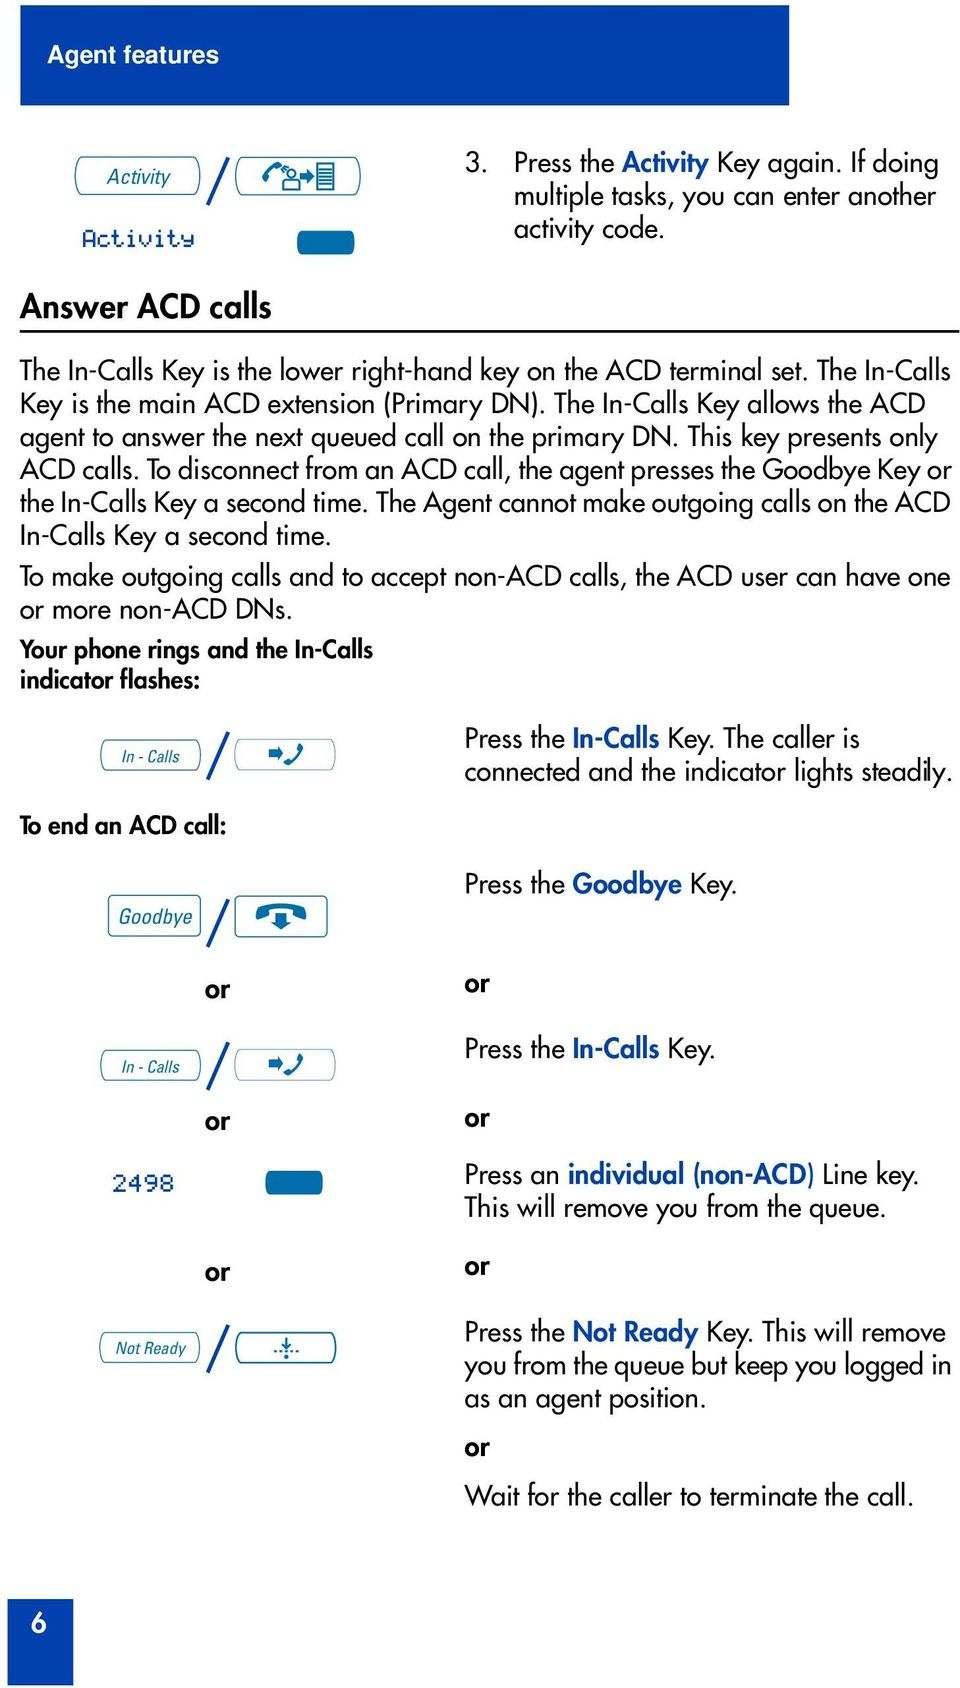 The In-Calls Key allows the ACD agent to answer the next queued call on the primary DN. This key presents only ACD calls.